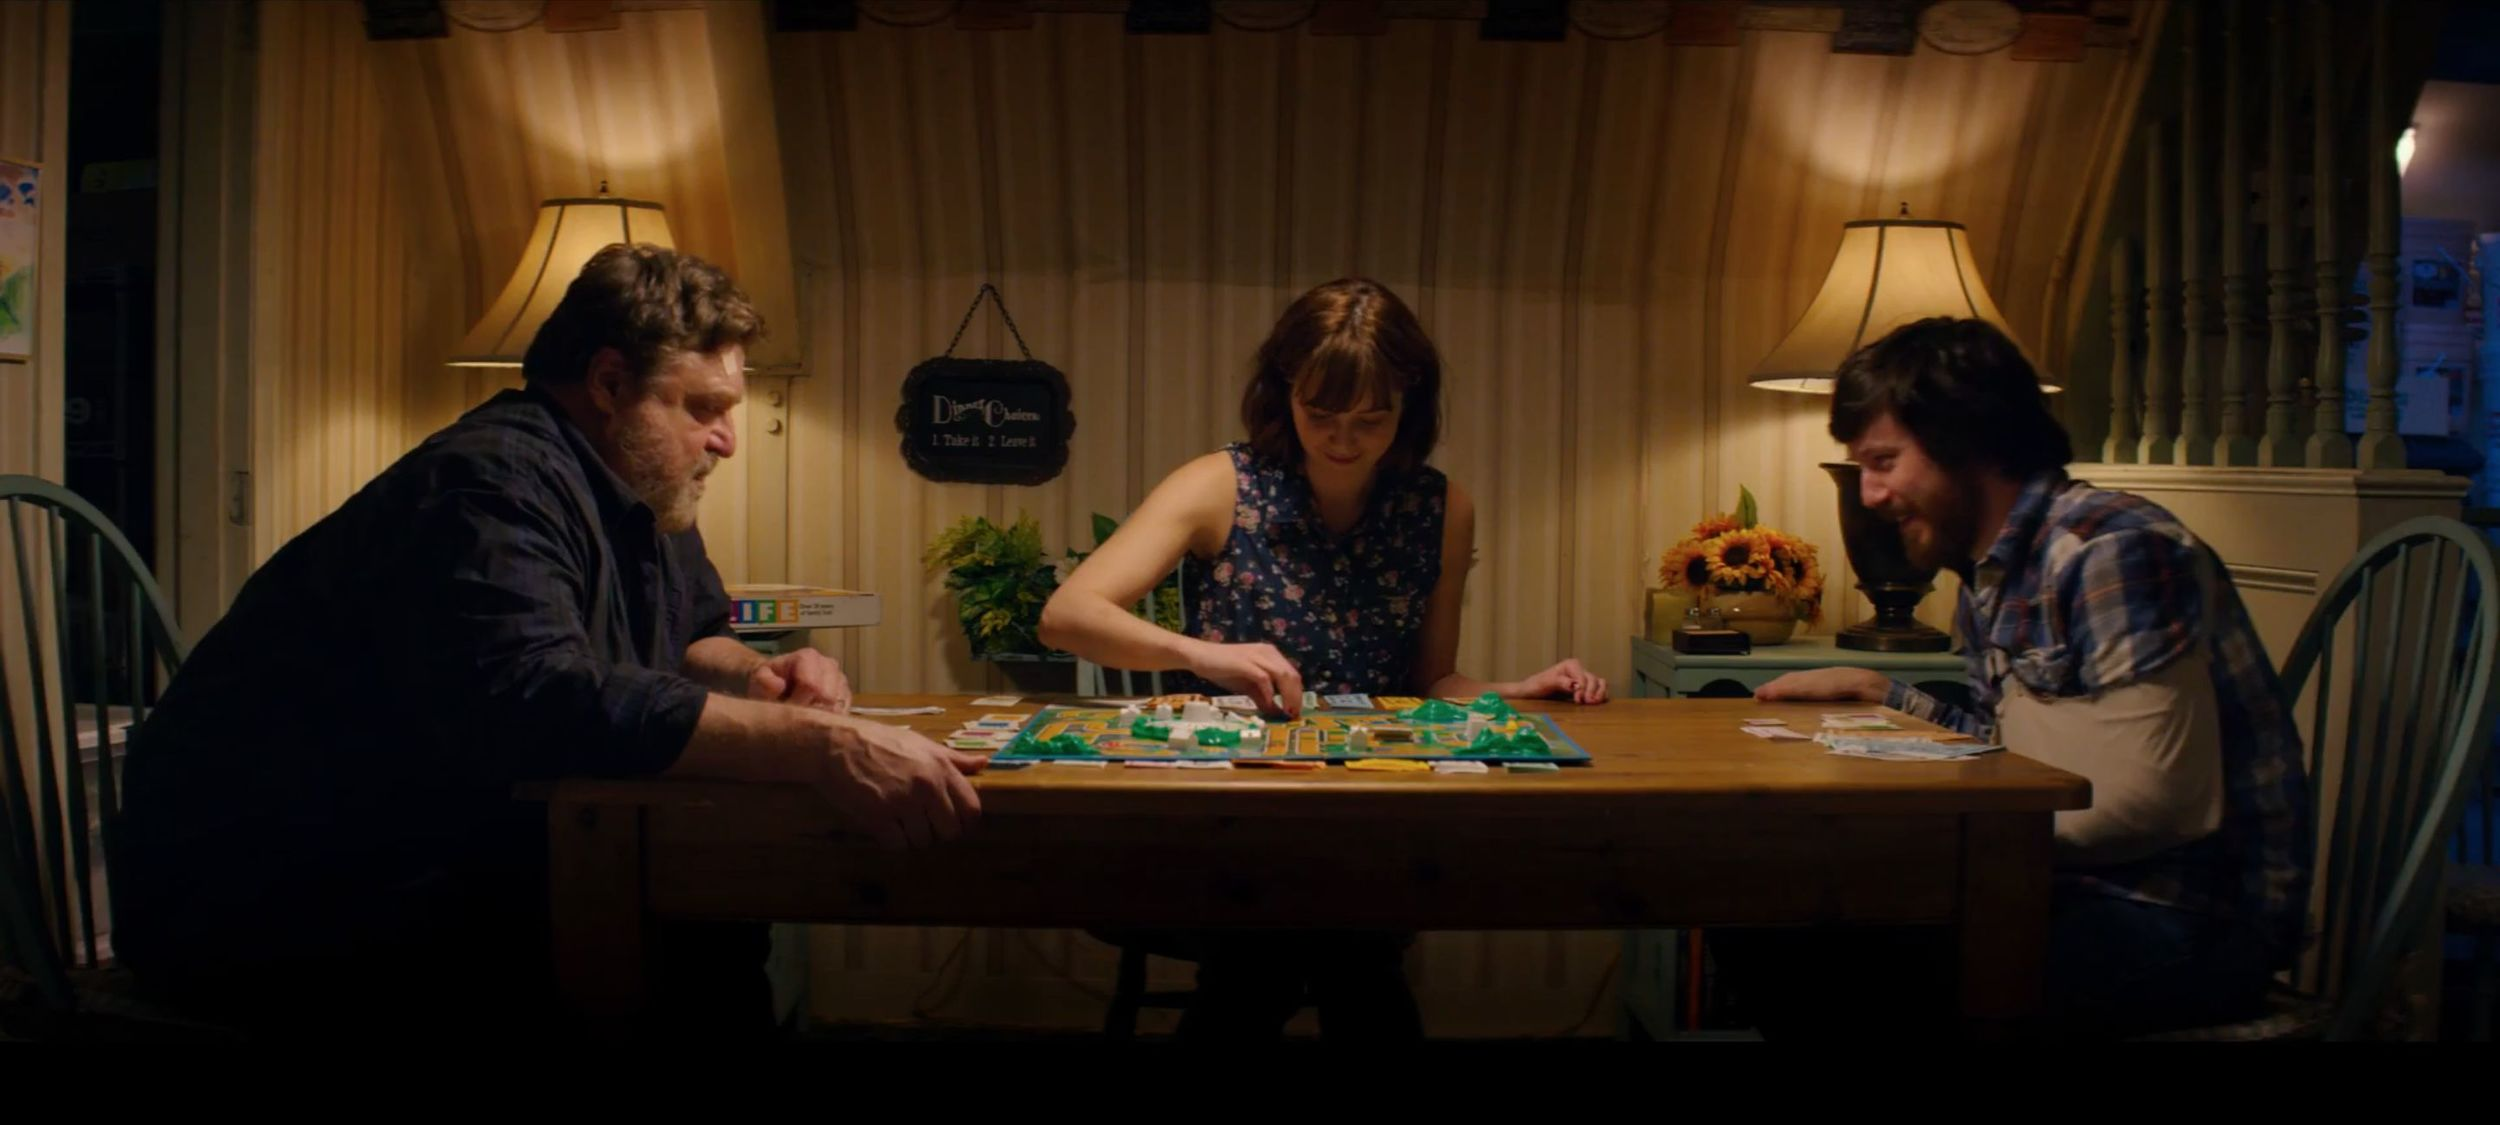 A scene from 10 CLOVERFIELD LANE.